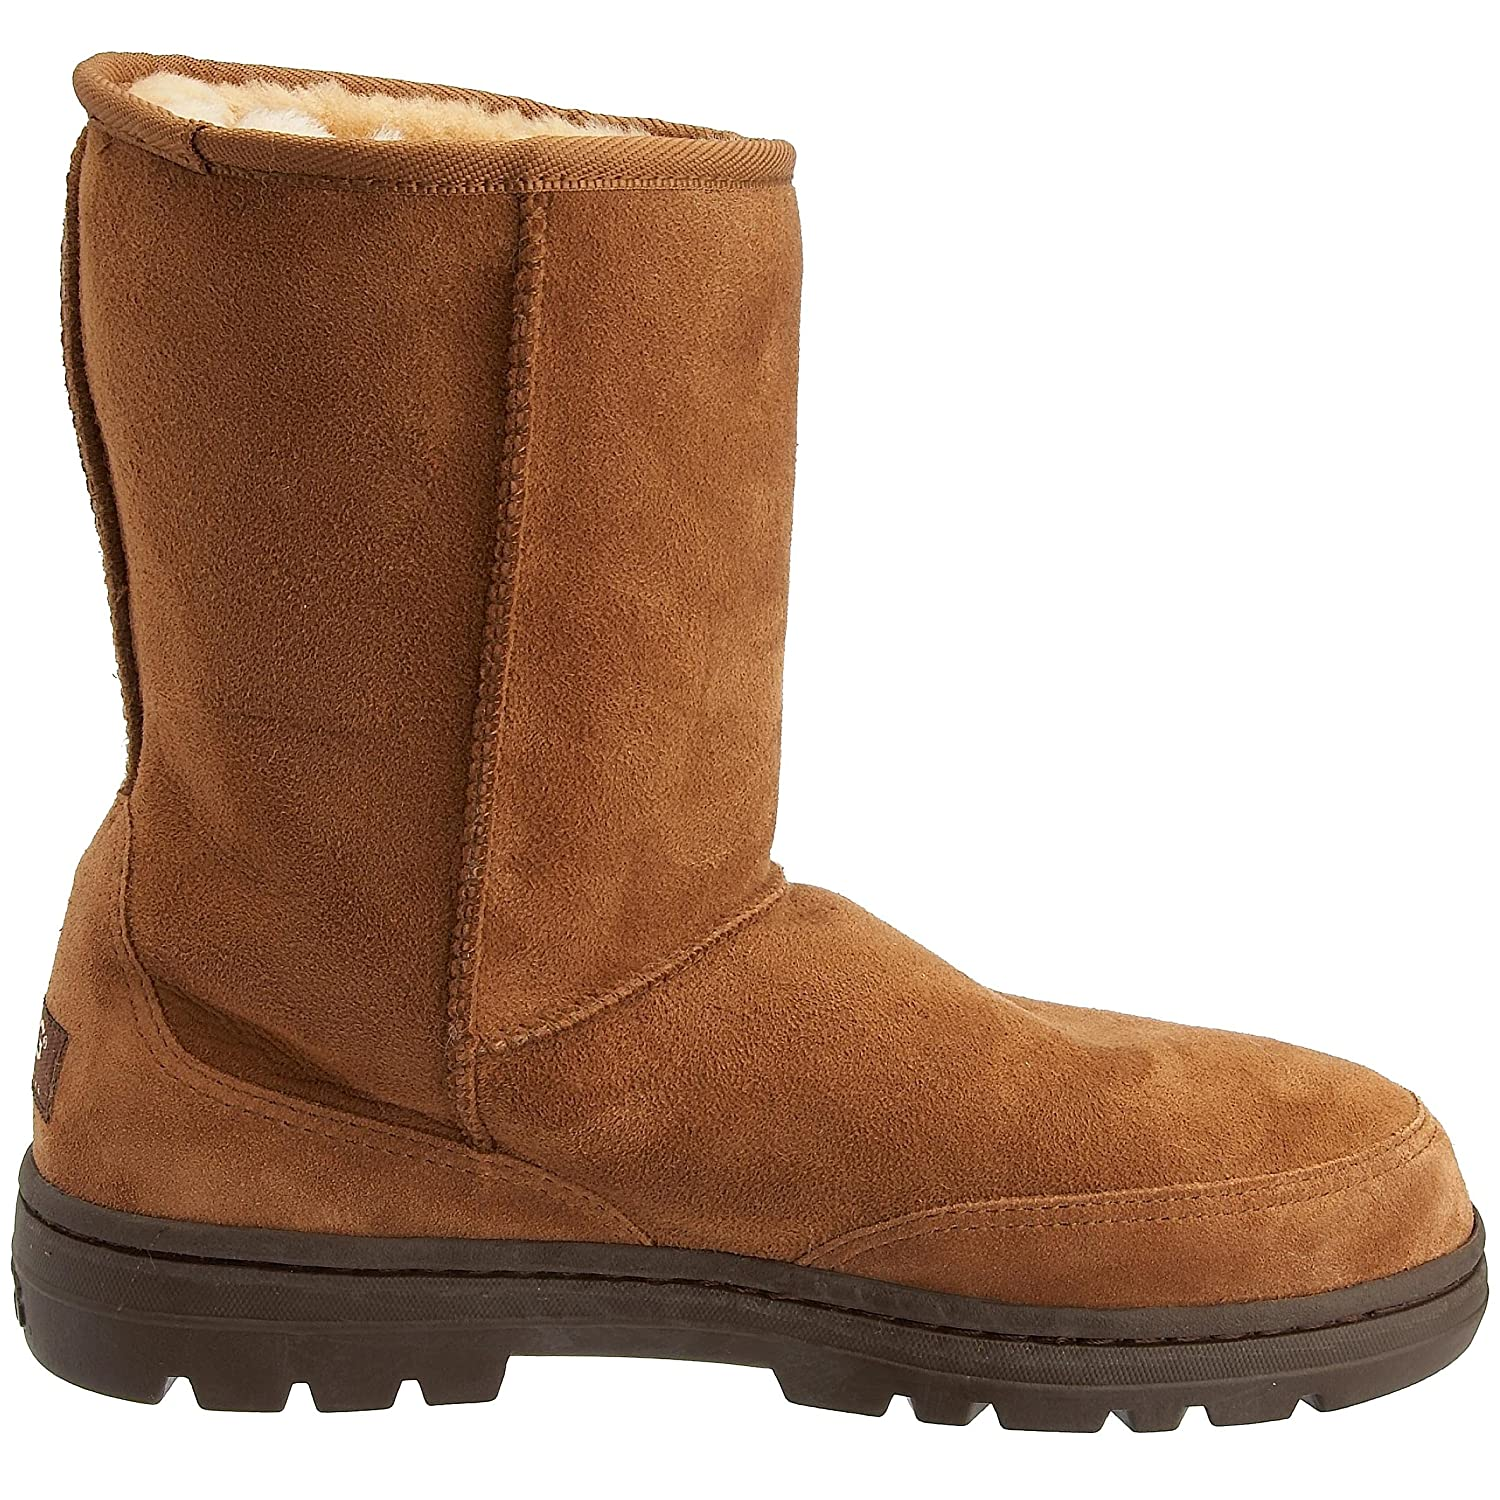 6c36d95e216 Ugg Men's Ultra Sho Chestnut Pull On Boot 5220 6 UK: Amazon.co.uk ...